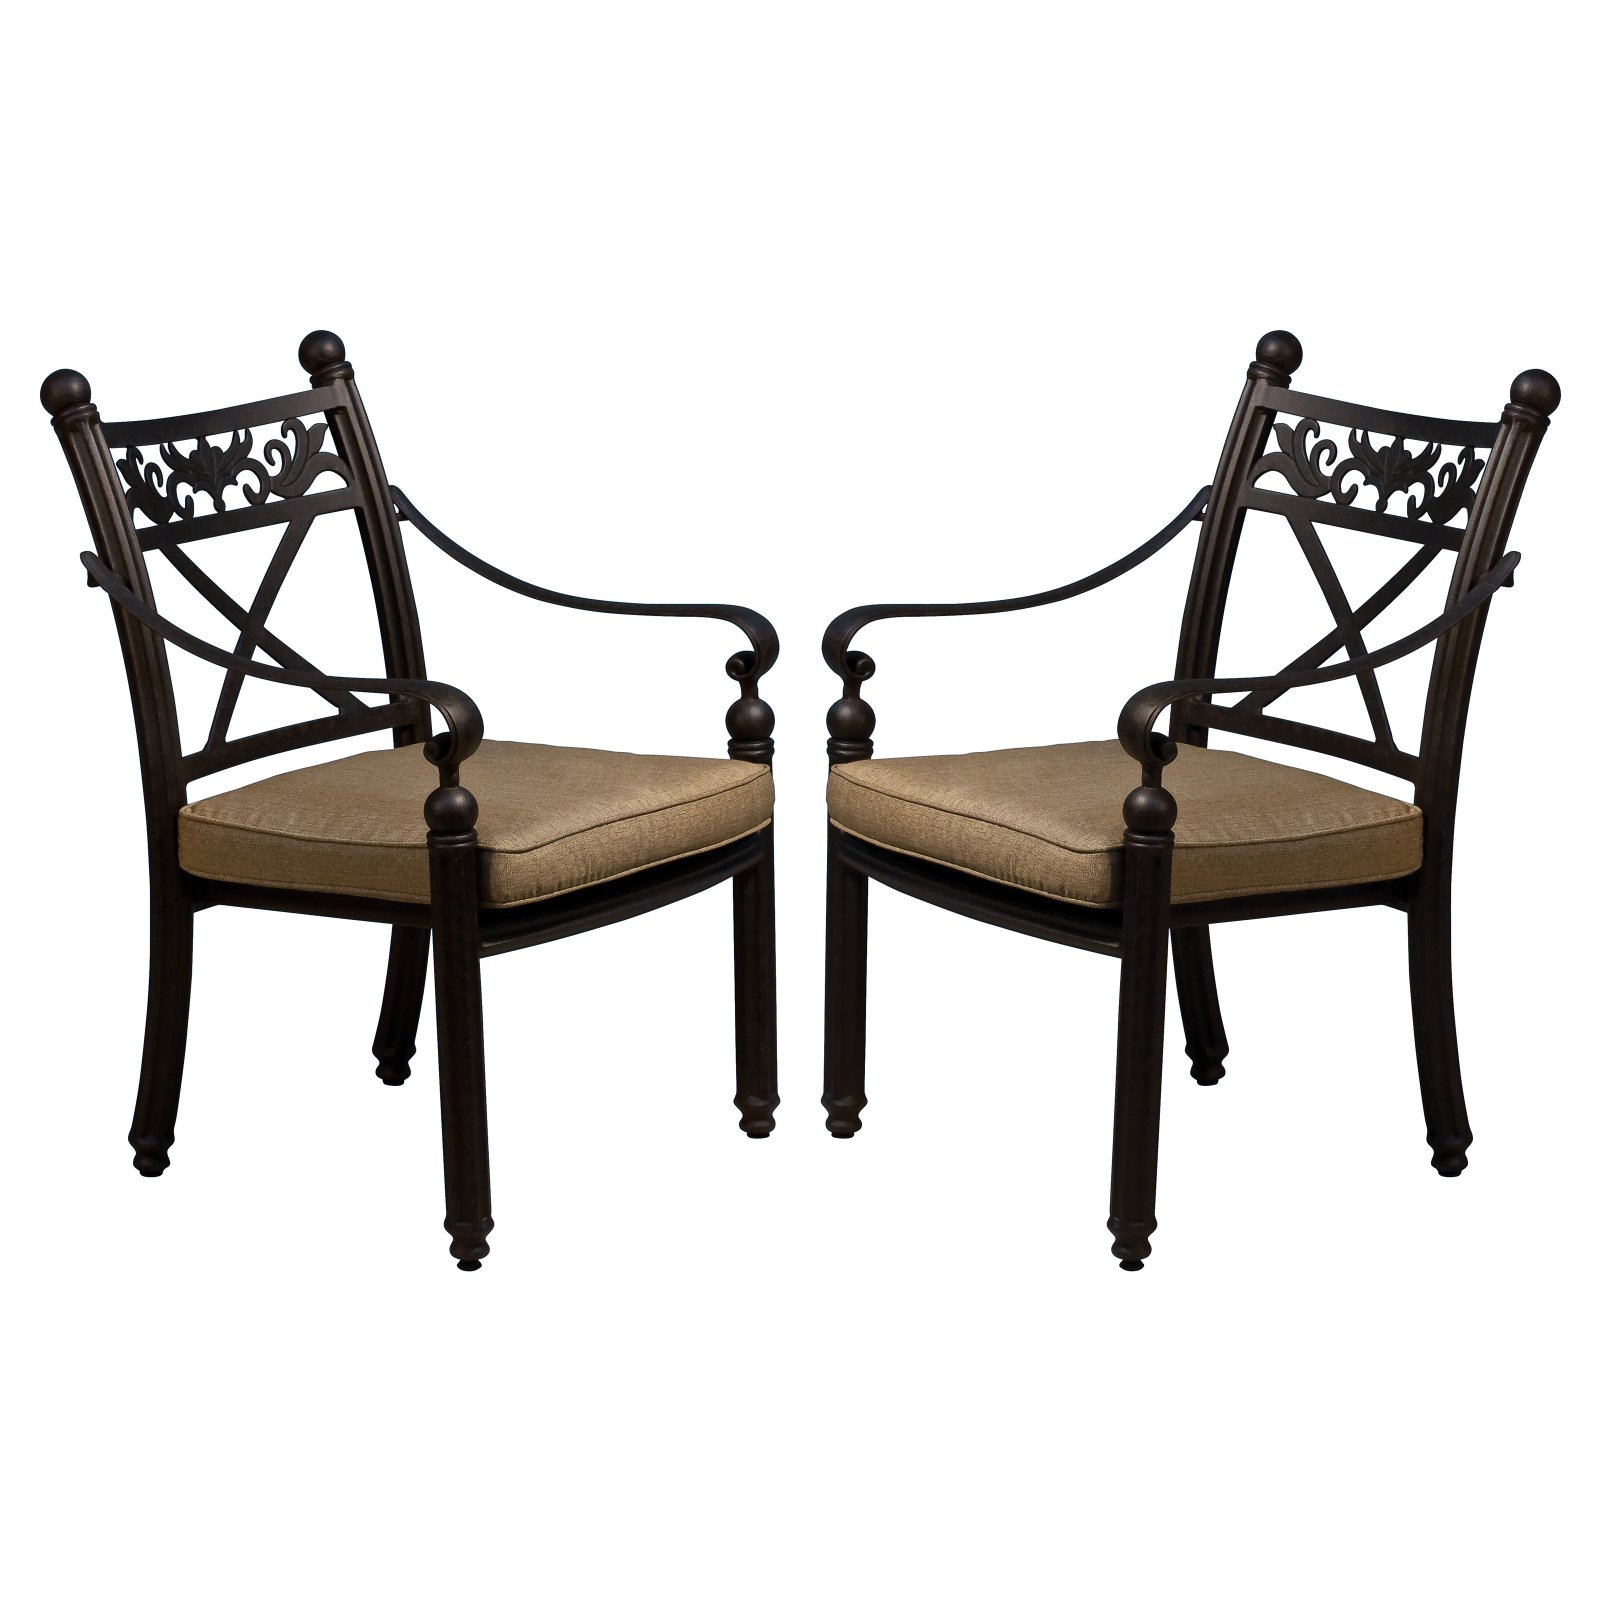 Paradise Cove Designs Balboa Aluminum Outdoor Dining Chair with Optional Cushions Set of 2 by